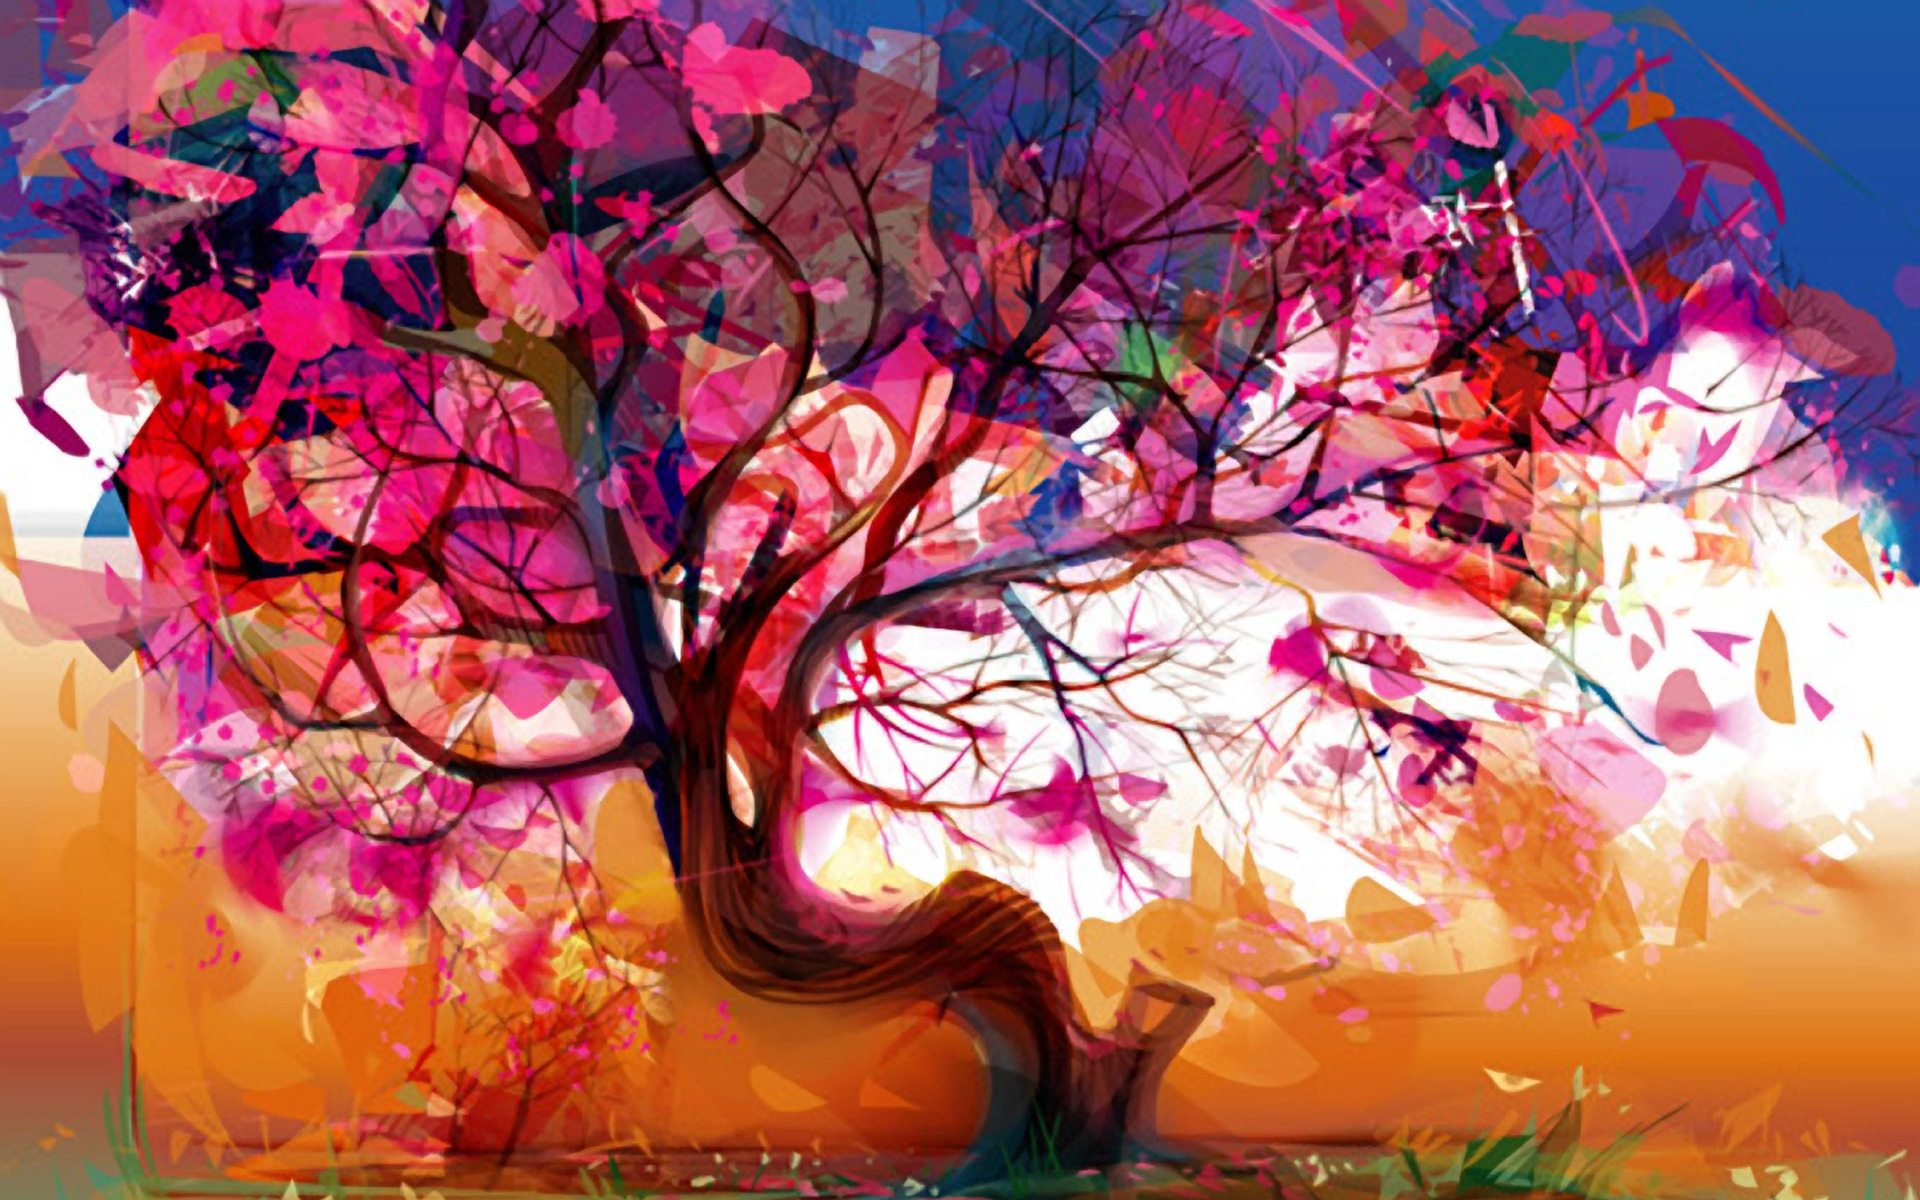 Cool_Abstract_Tree_Wallpaper_1920x1200_wallpaperhere